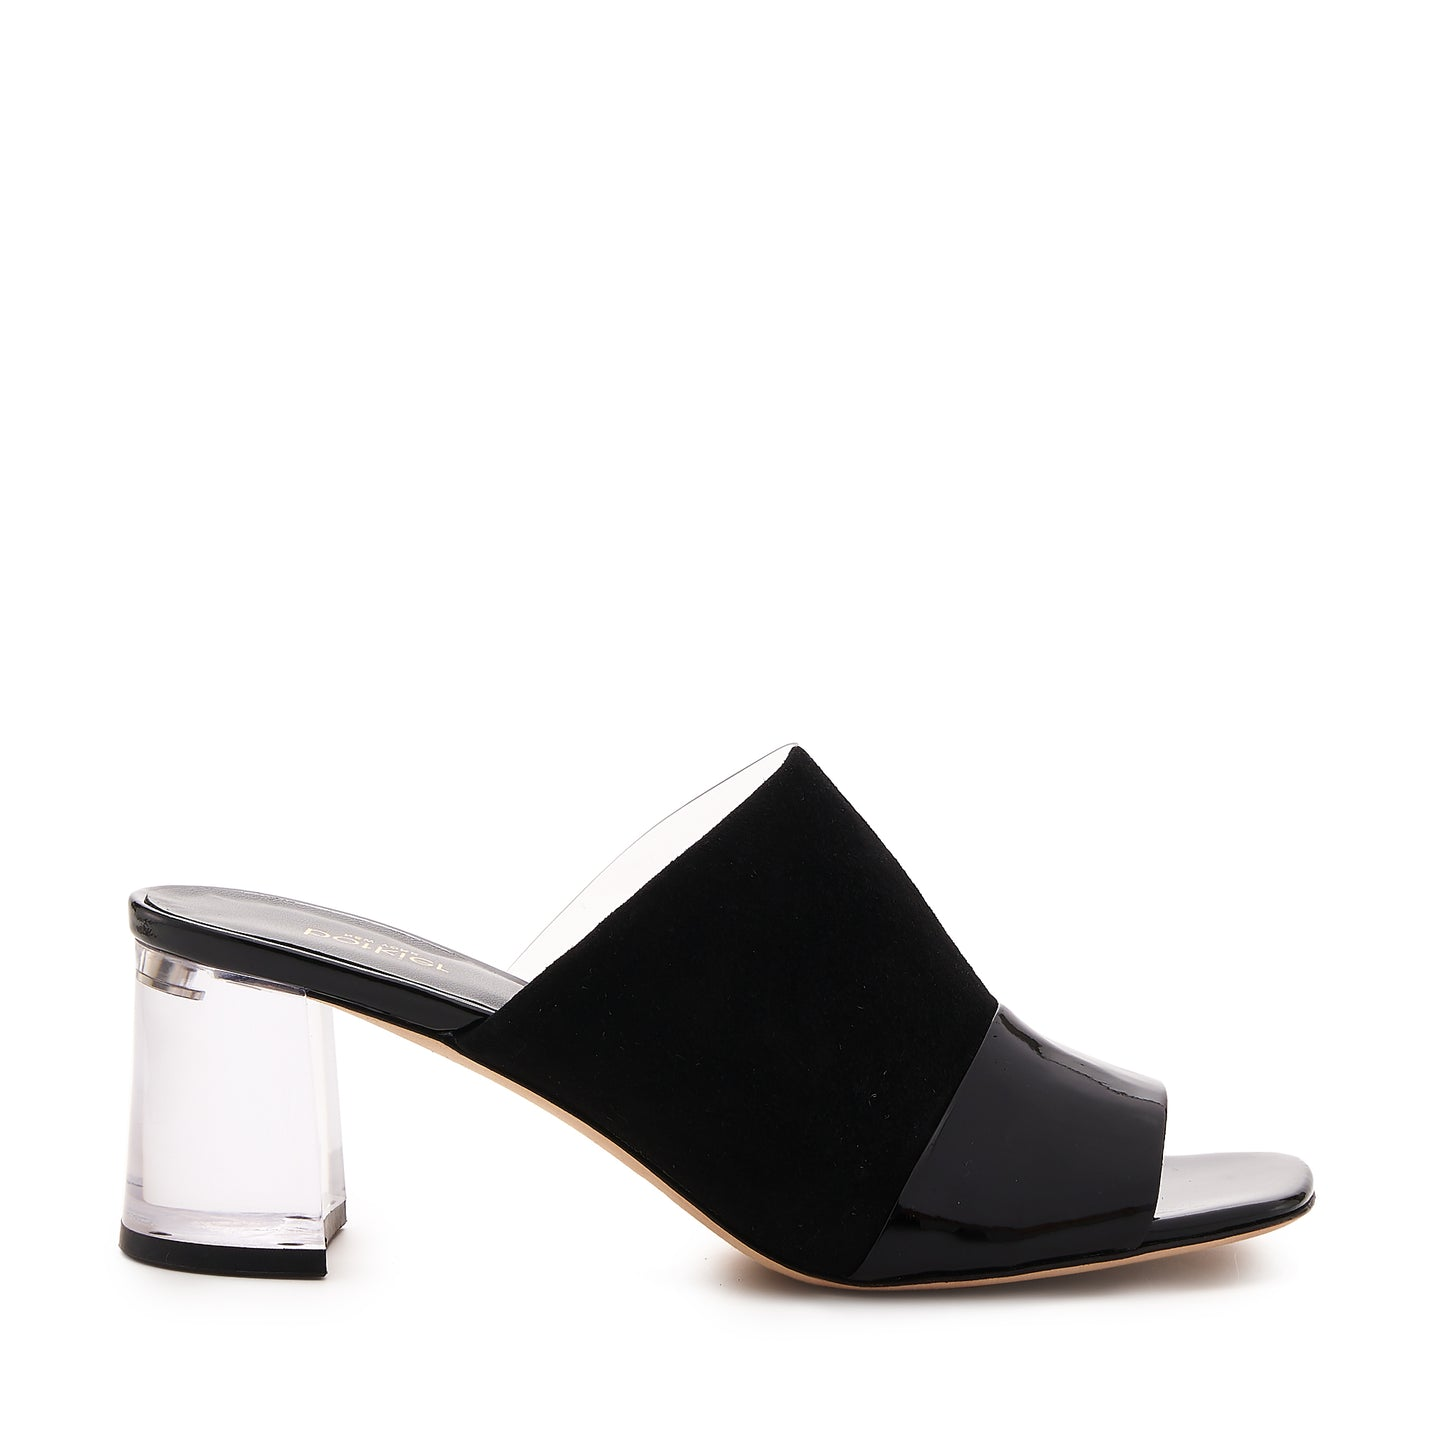 Decker Low Heel Mule